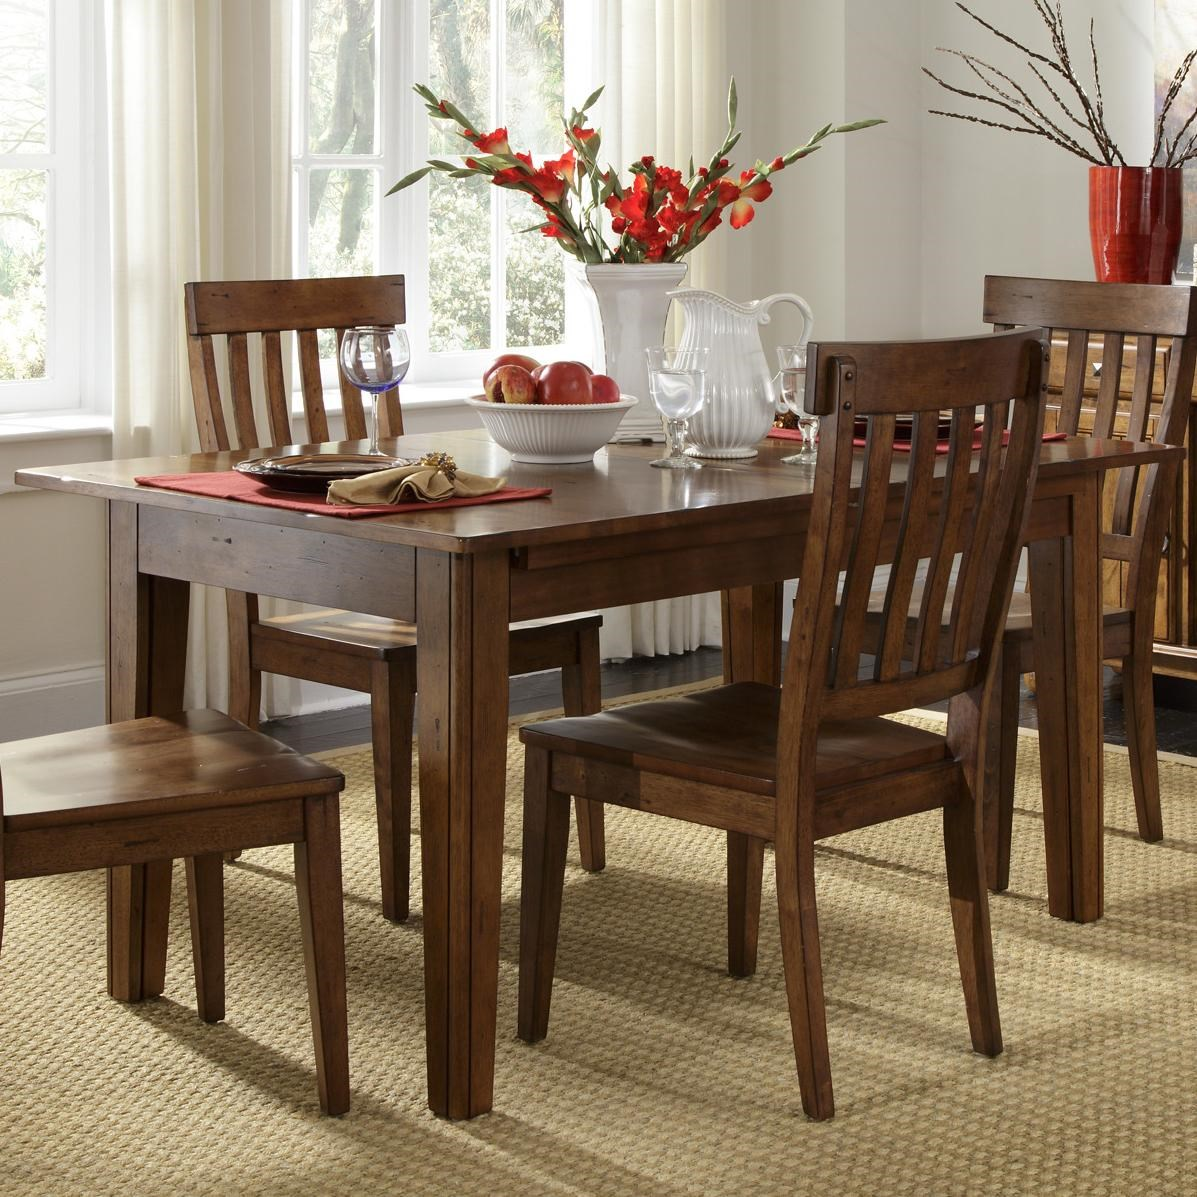 AAmerica Toluca Solid Wood Leg Table With 3 Self Storing Leaves